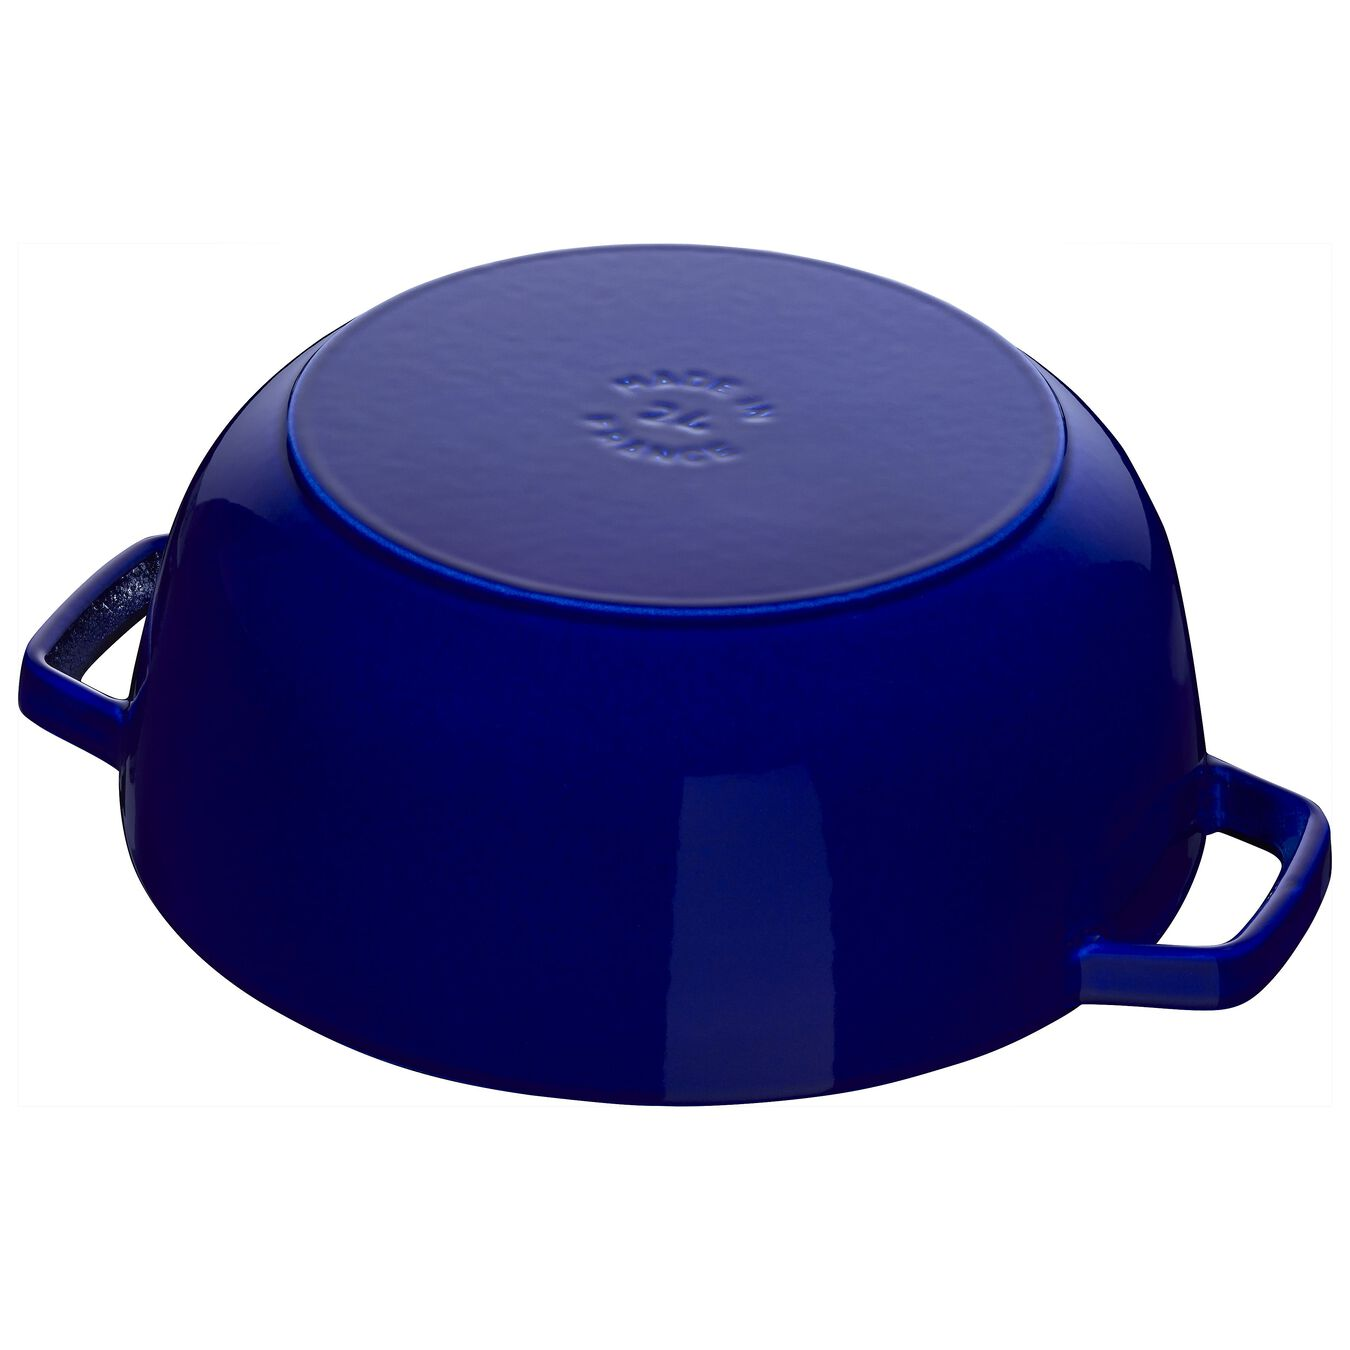 5-qt Essential French Oven with Lilly Lid - Visual Imperfections - Dark Blue,,large 4